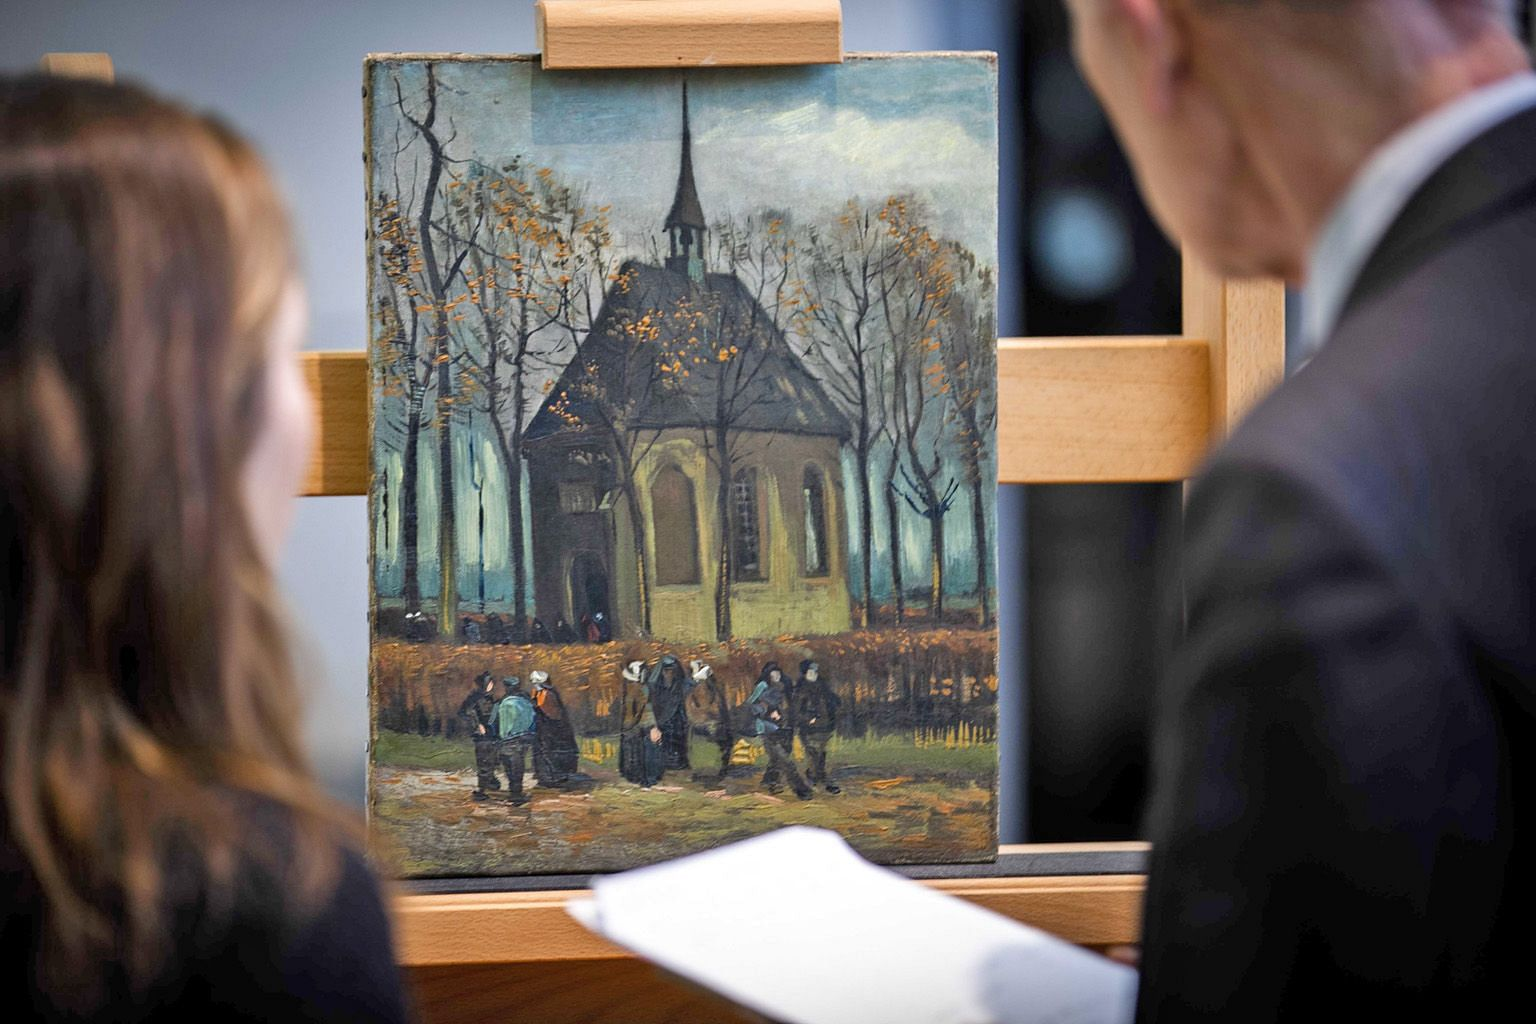 The painting Congregation Leaving The Reformed Church In Nuenen (1885) by Vincent van Gogh (1853-1890) is ready for display in the permanent collection of the Van Gogh Museum in Amsterdam, the Netherlands. Two of van Gogh's works - Seascape Near Sche